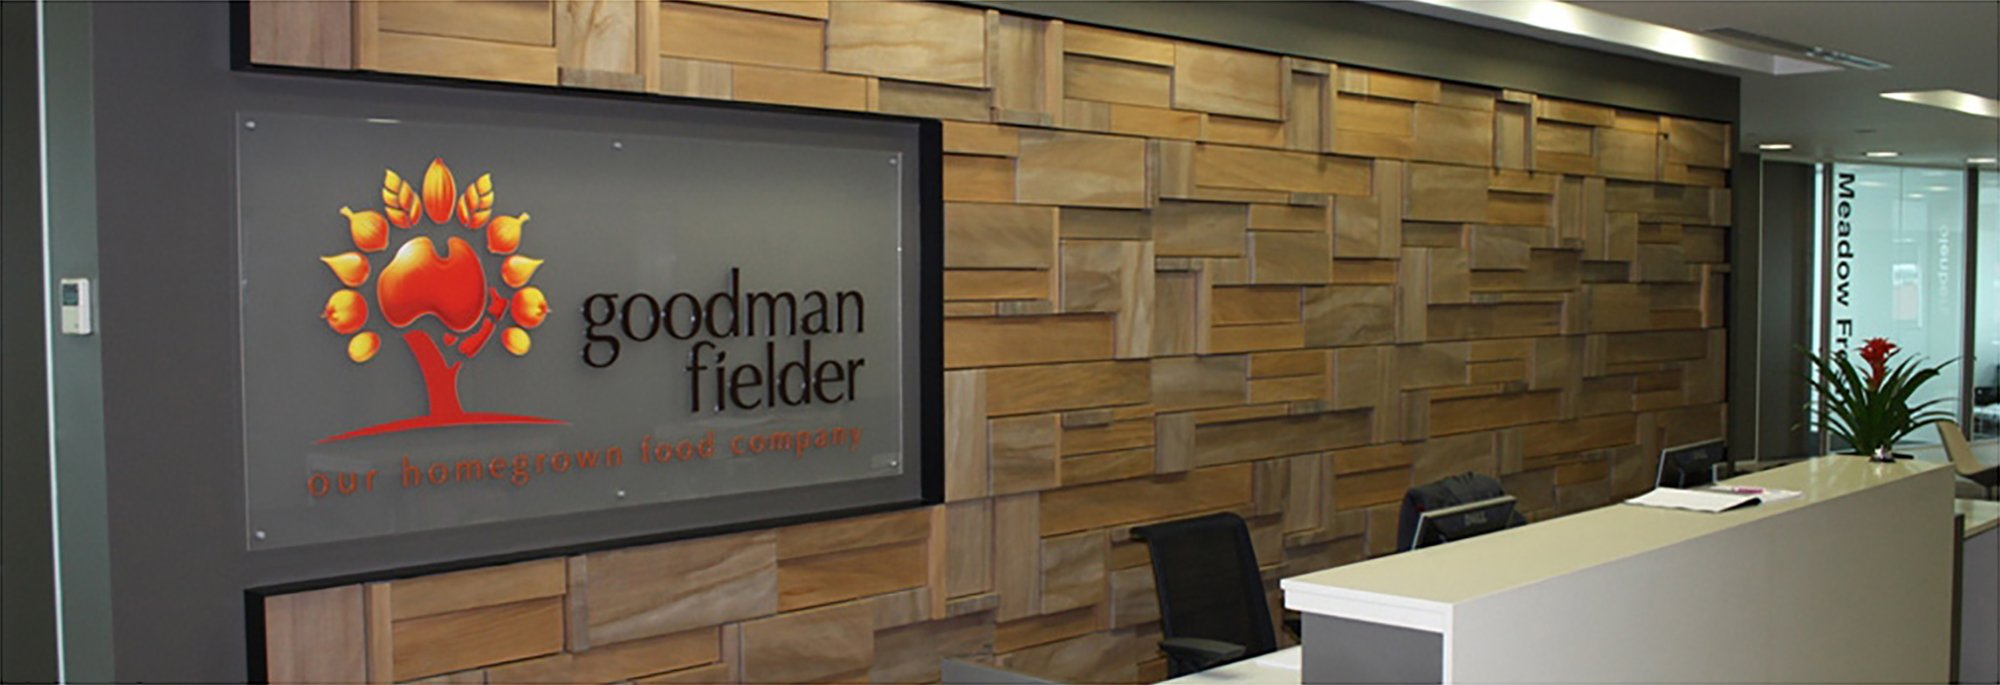 Office furniture designed for goodman fielder